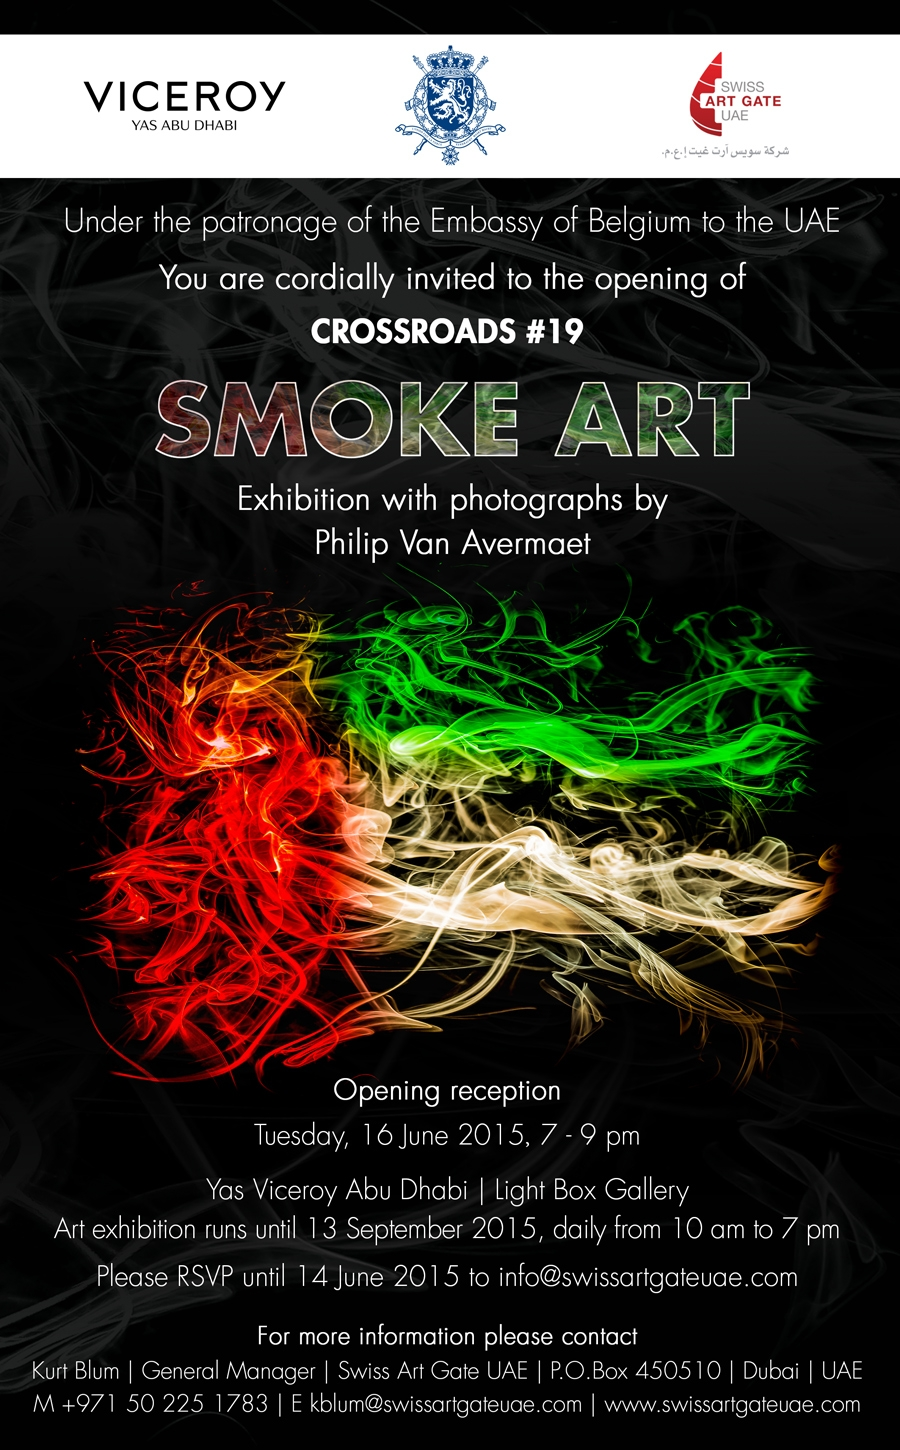 Crossroads #19,Smoke Art,philip Van Avermaet,photography, exhibition, Abu Dhabi